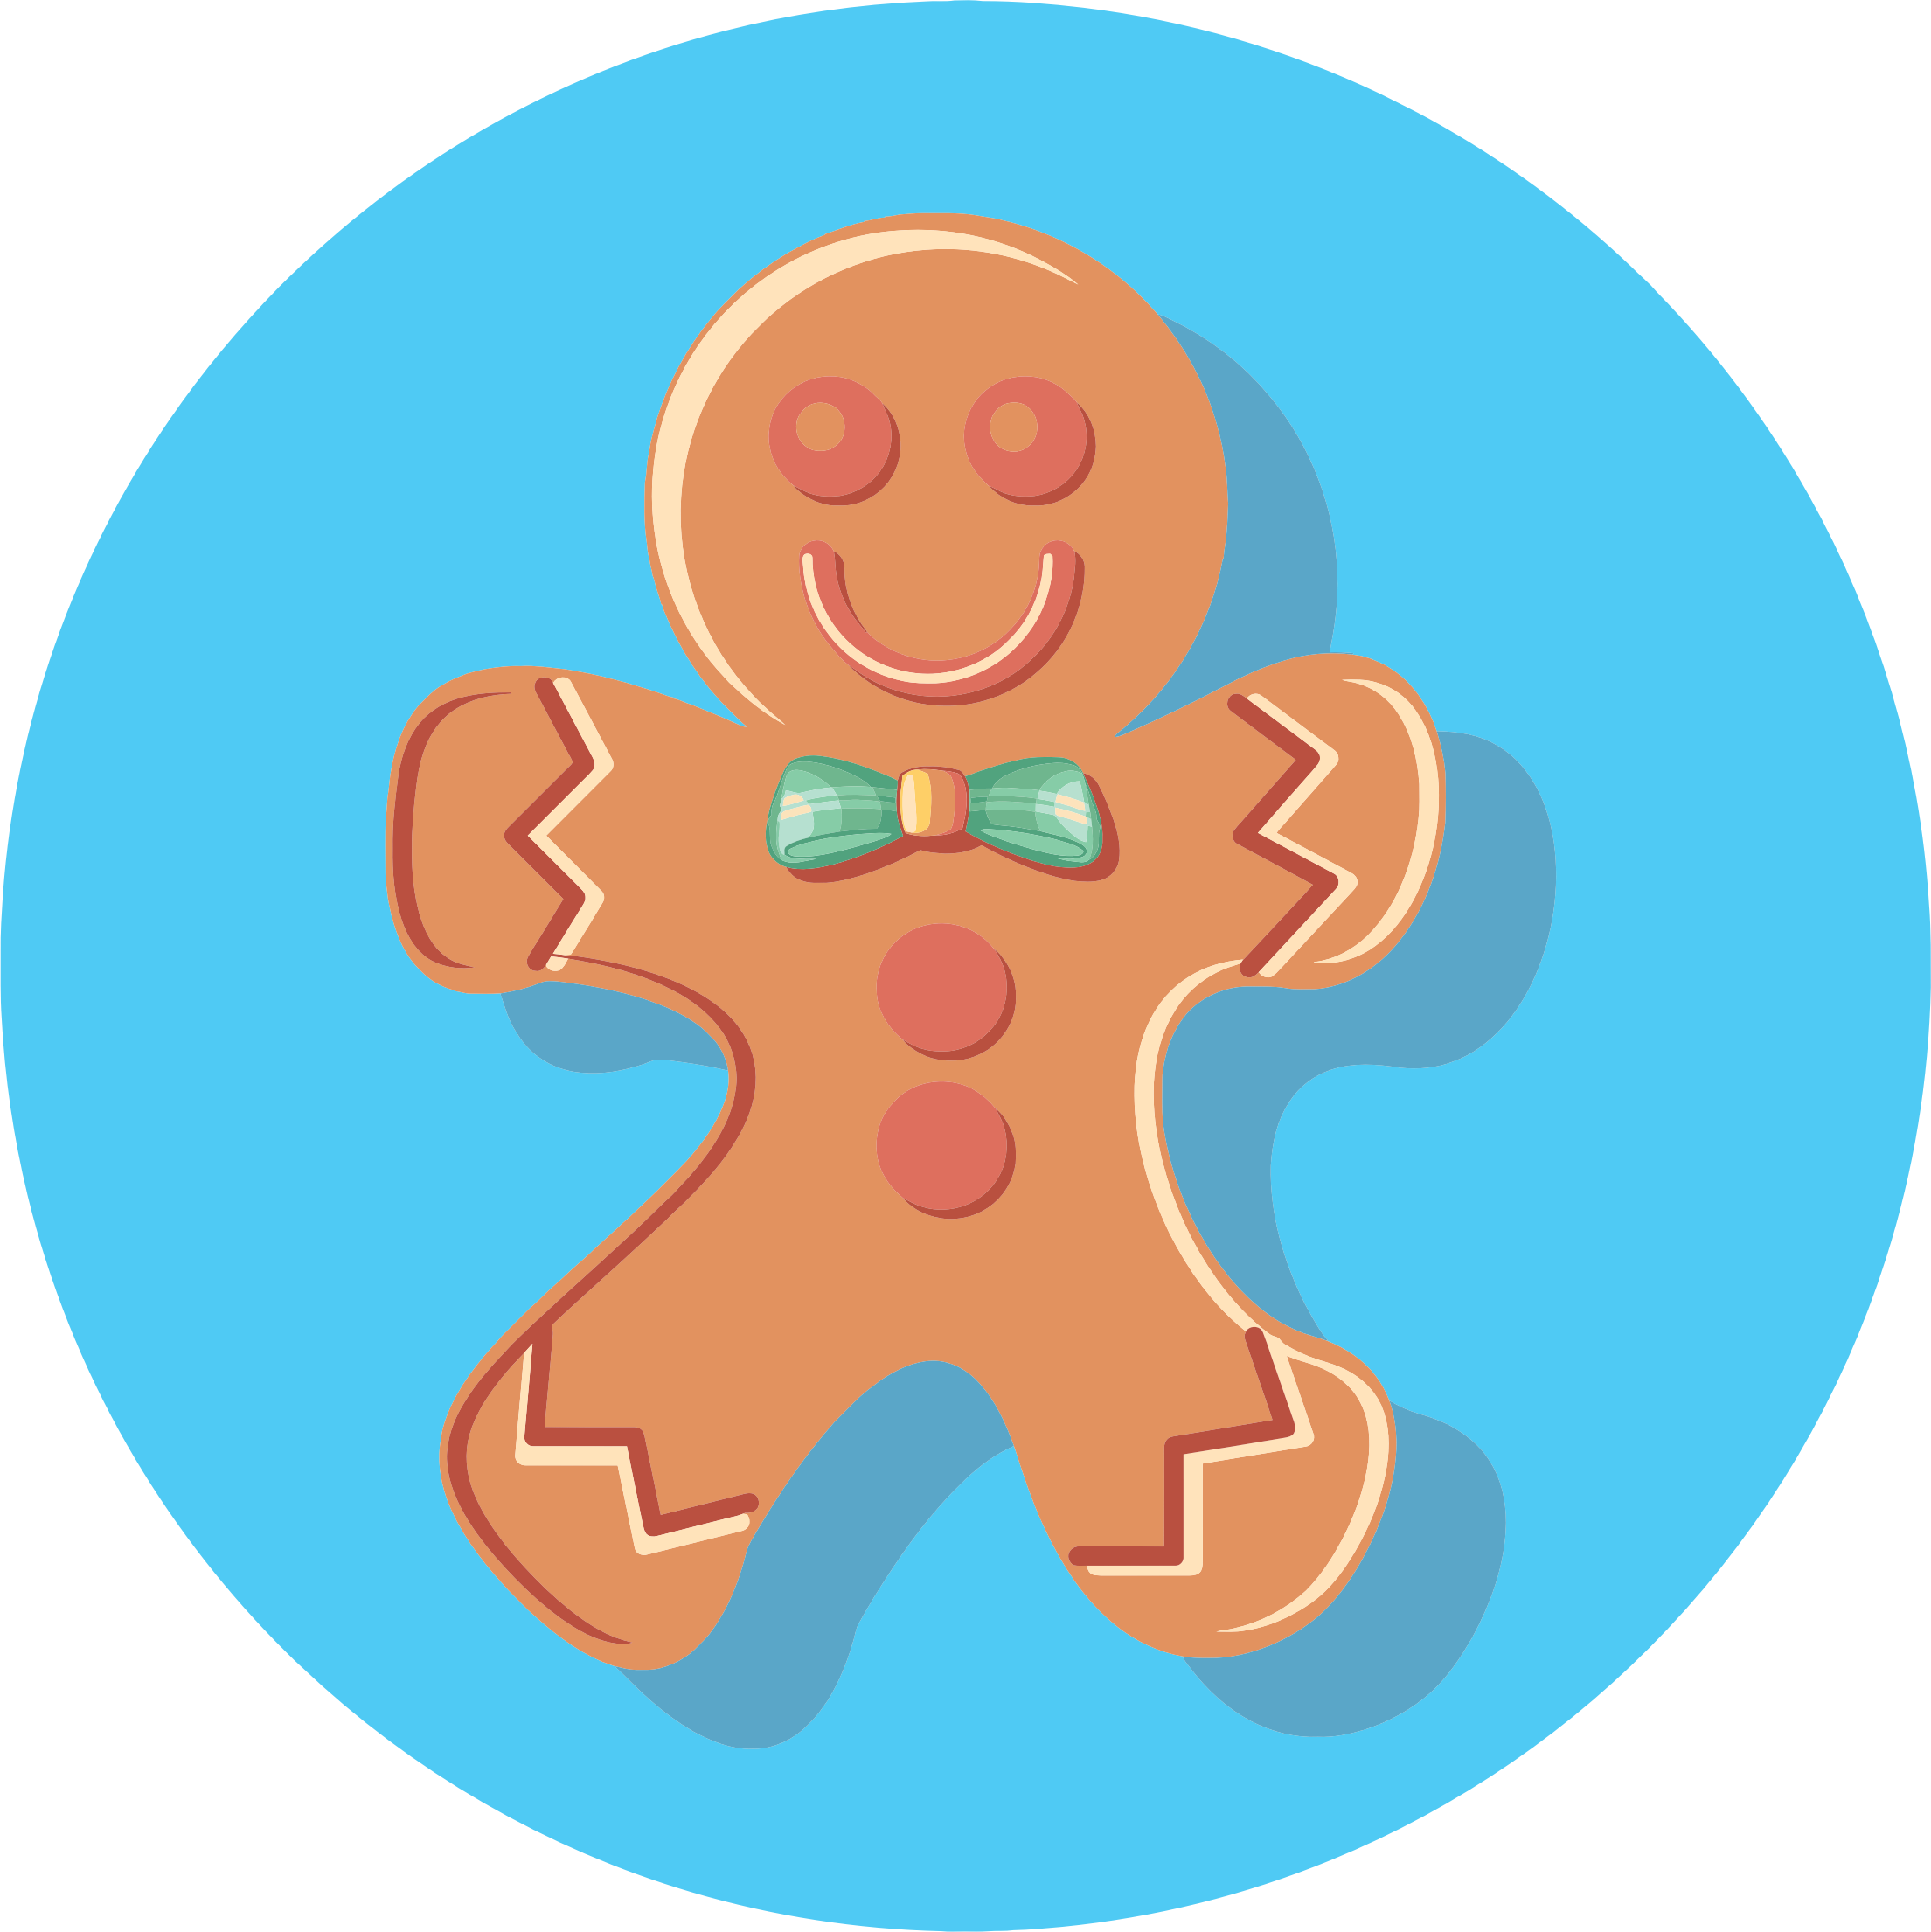 Gingerbread Man Icon by GDJ